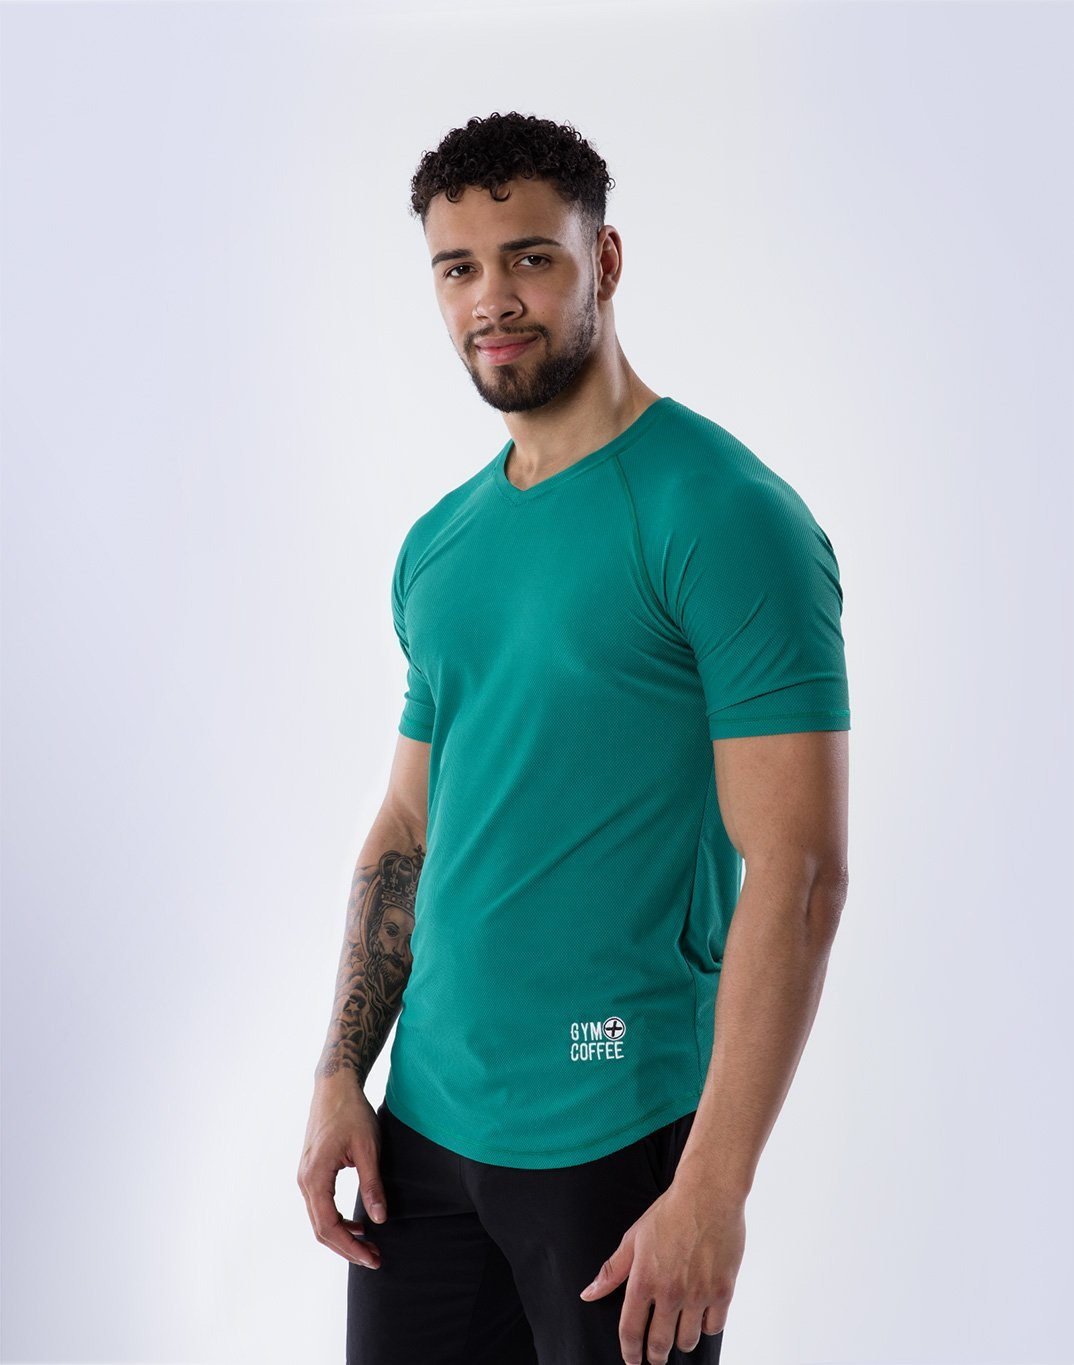 Gym Plus Coffee Men's T-Shirt V-Tech Tee in Green Designed in Ireland